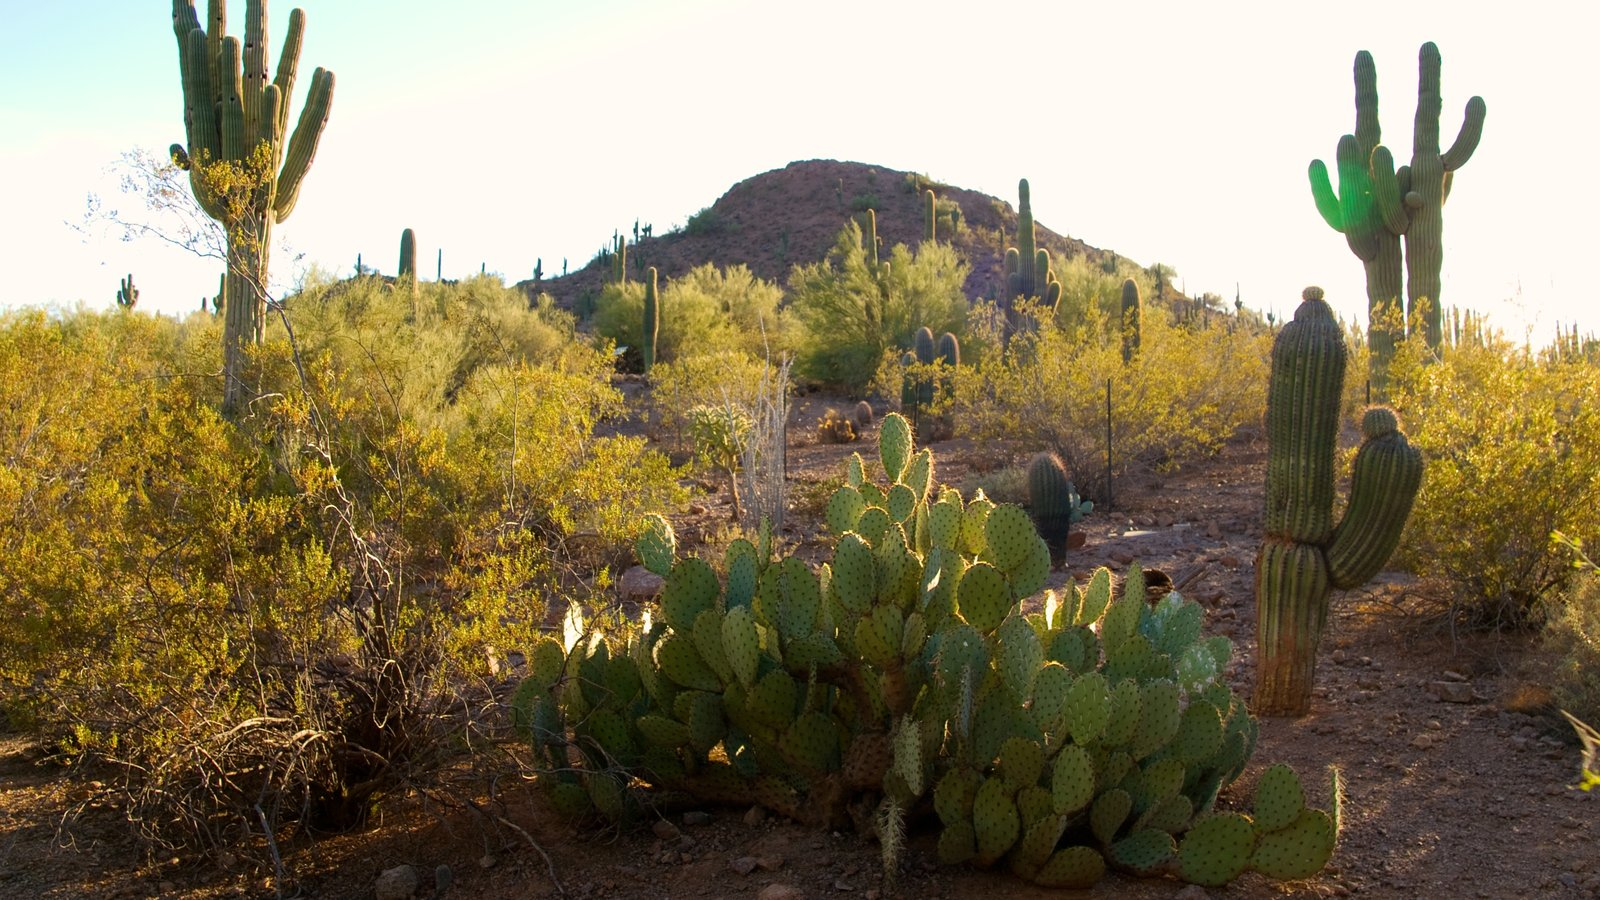 Nature Pictures: View Images of Desert Botanical Garden